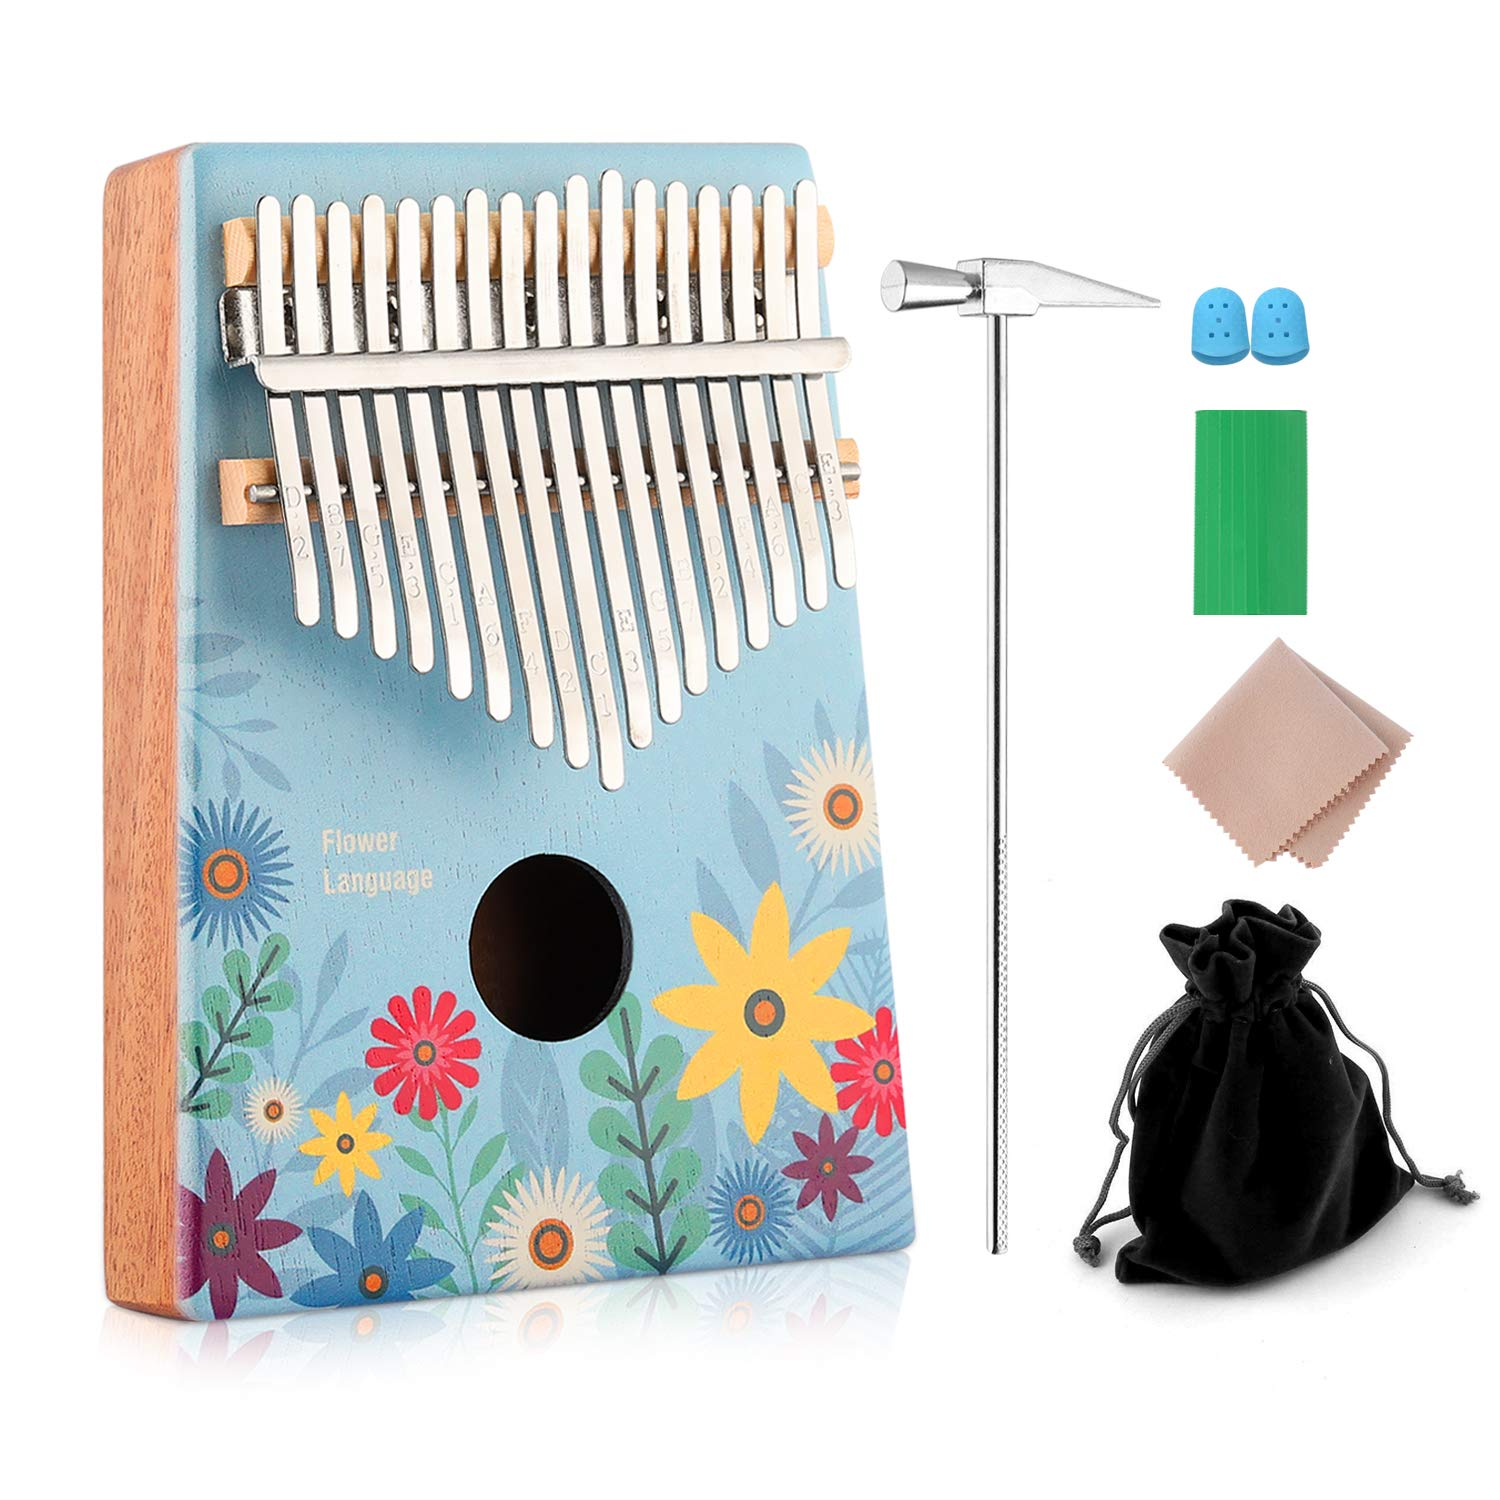 Kalimba 17 key Thumb Piano Finger Piano with Cloth Tuning Kit Hammer, Study Instruction Song Book, Hot Gift for Christmas 2018 Birthday Gifts for Kids, Children, Girlfriend (Full Bloom)